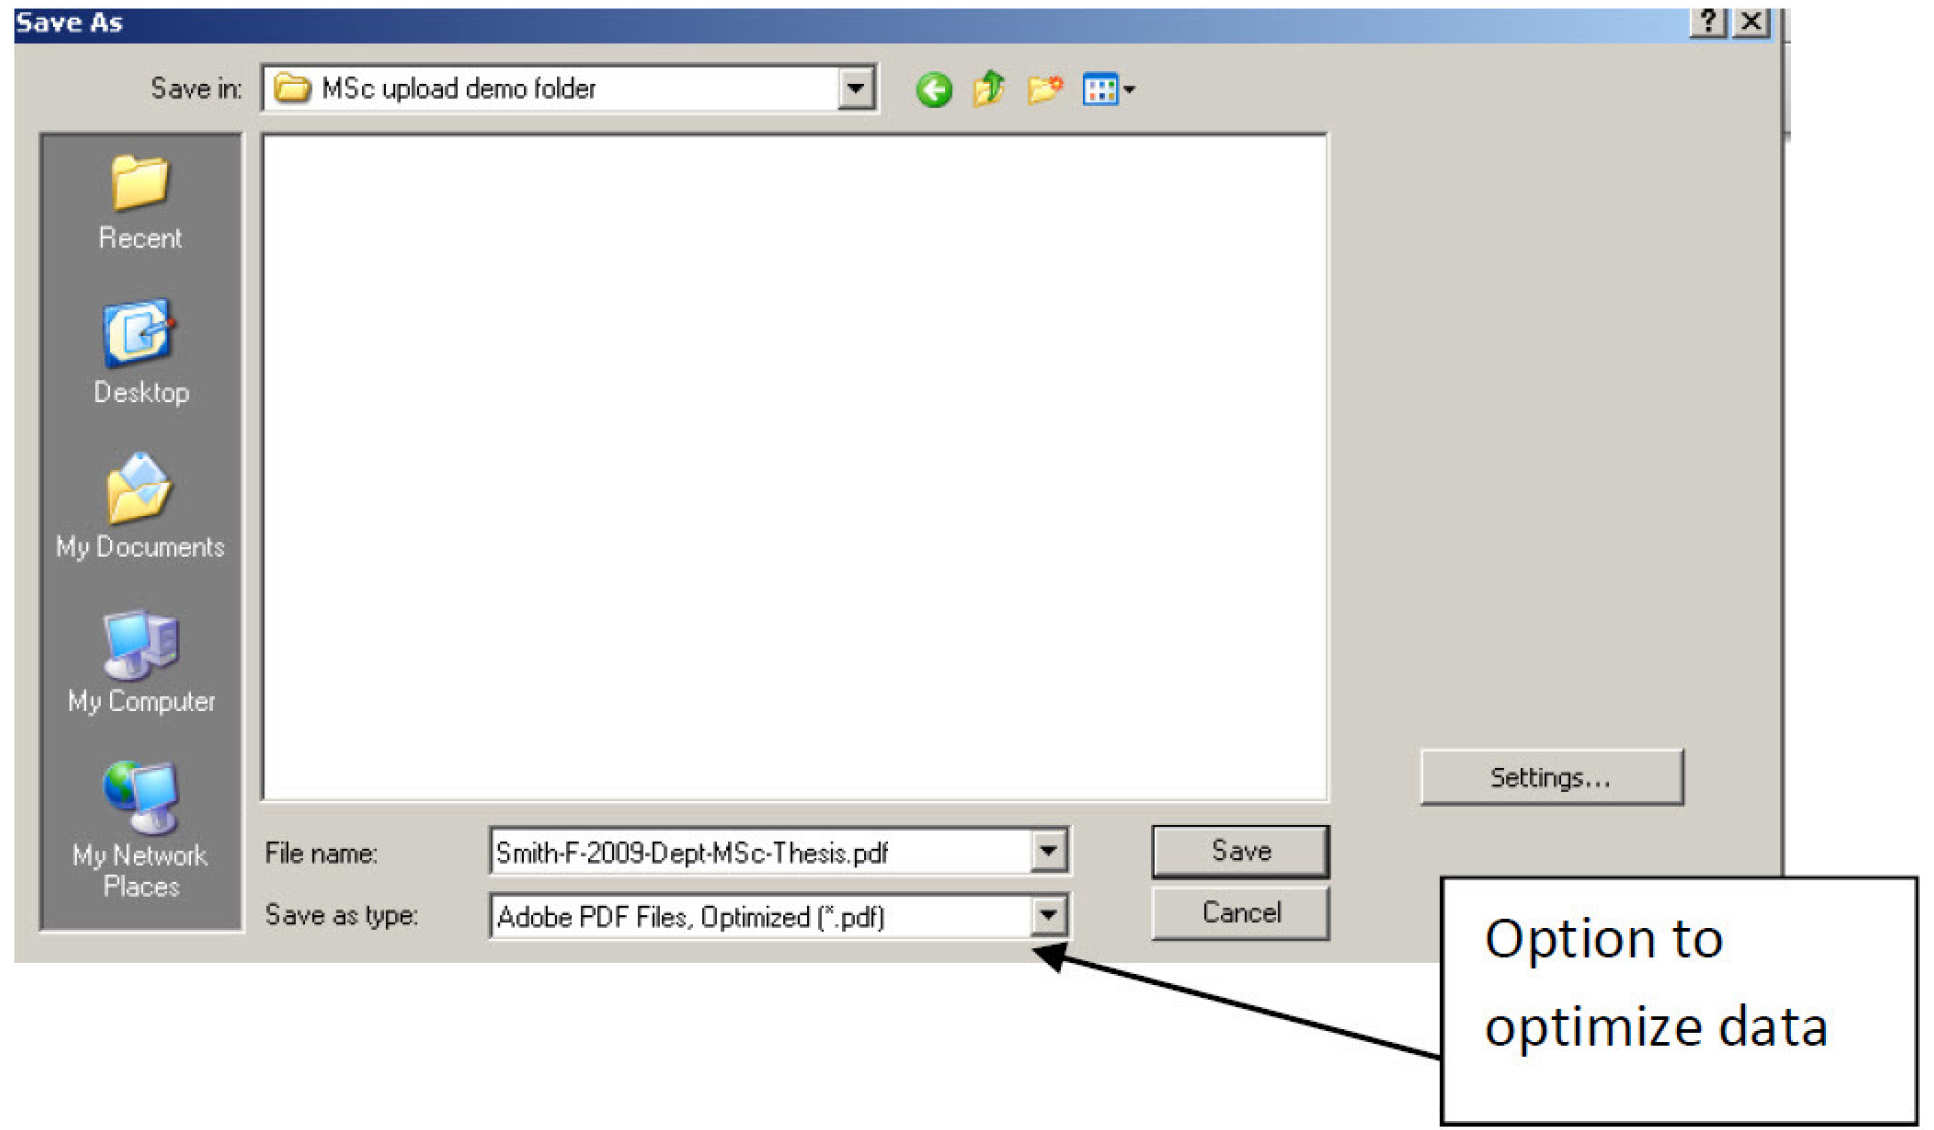 Screen image showing Optimize option in Acrobat professional